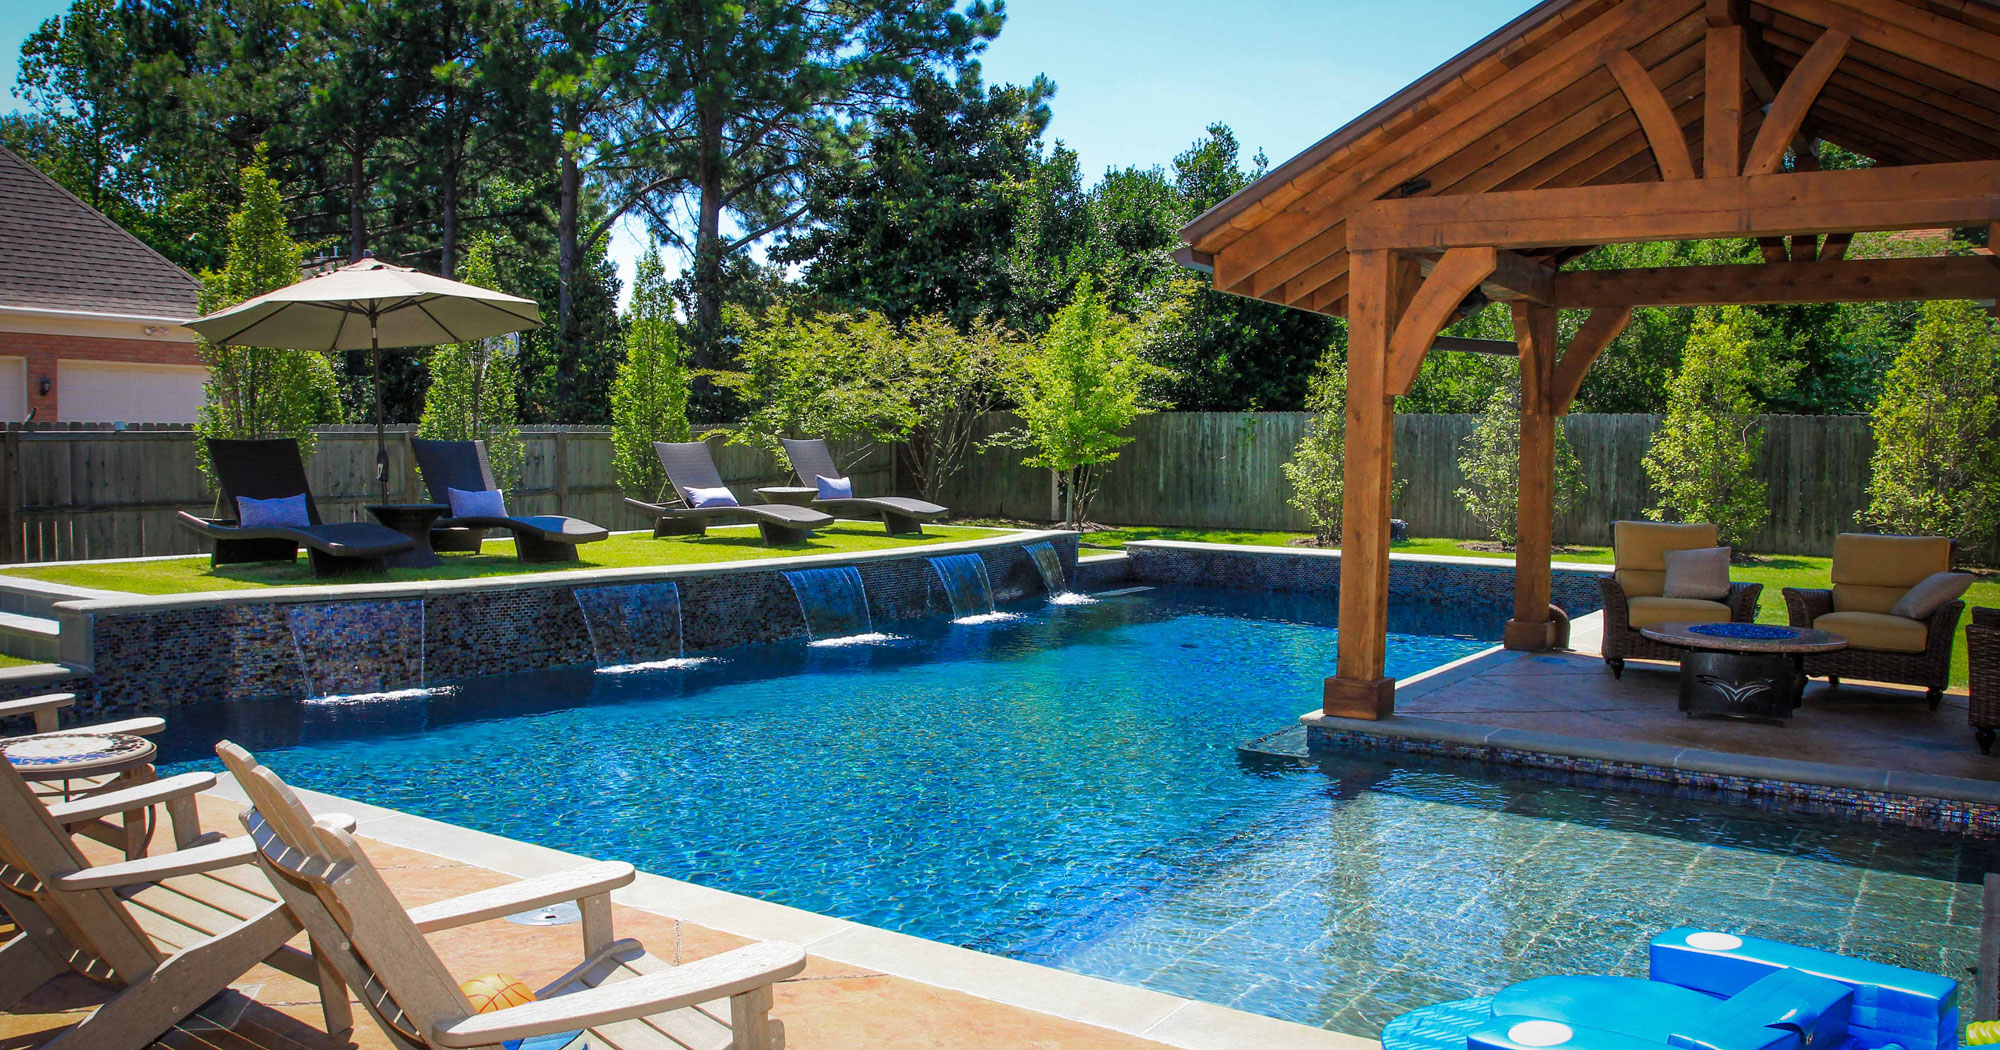 Backyard Living Trends For 2018 Cincinnati Pool And Patio with Backyard Pool Landscaping Pictures